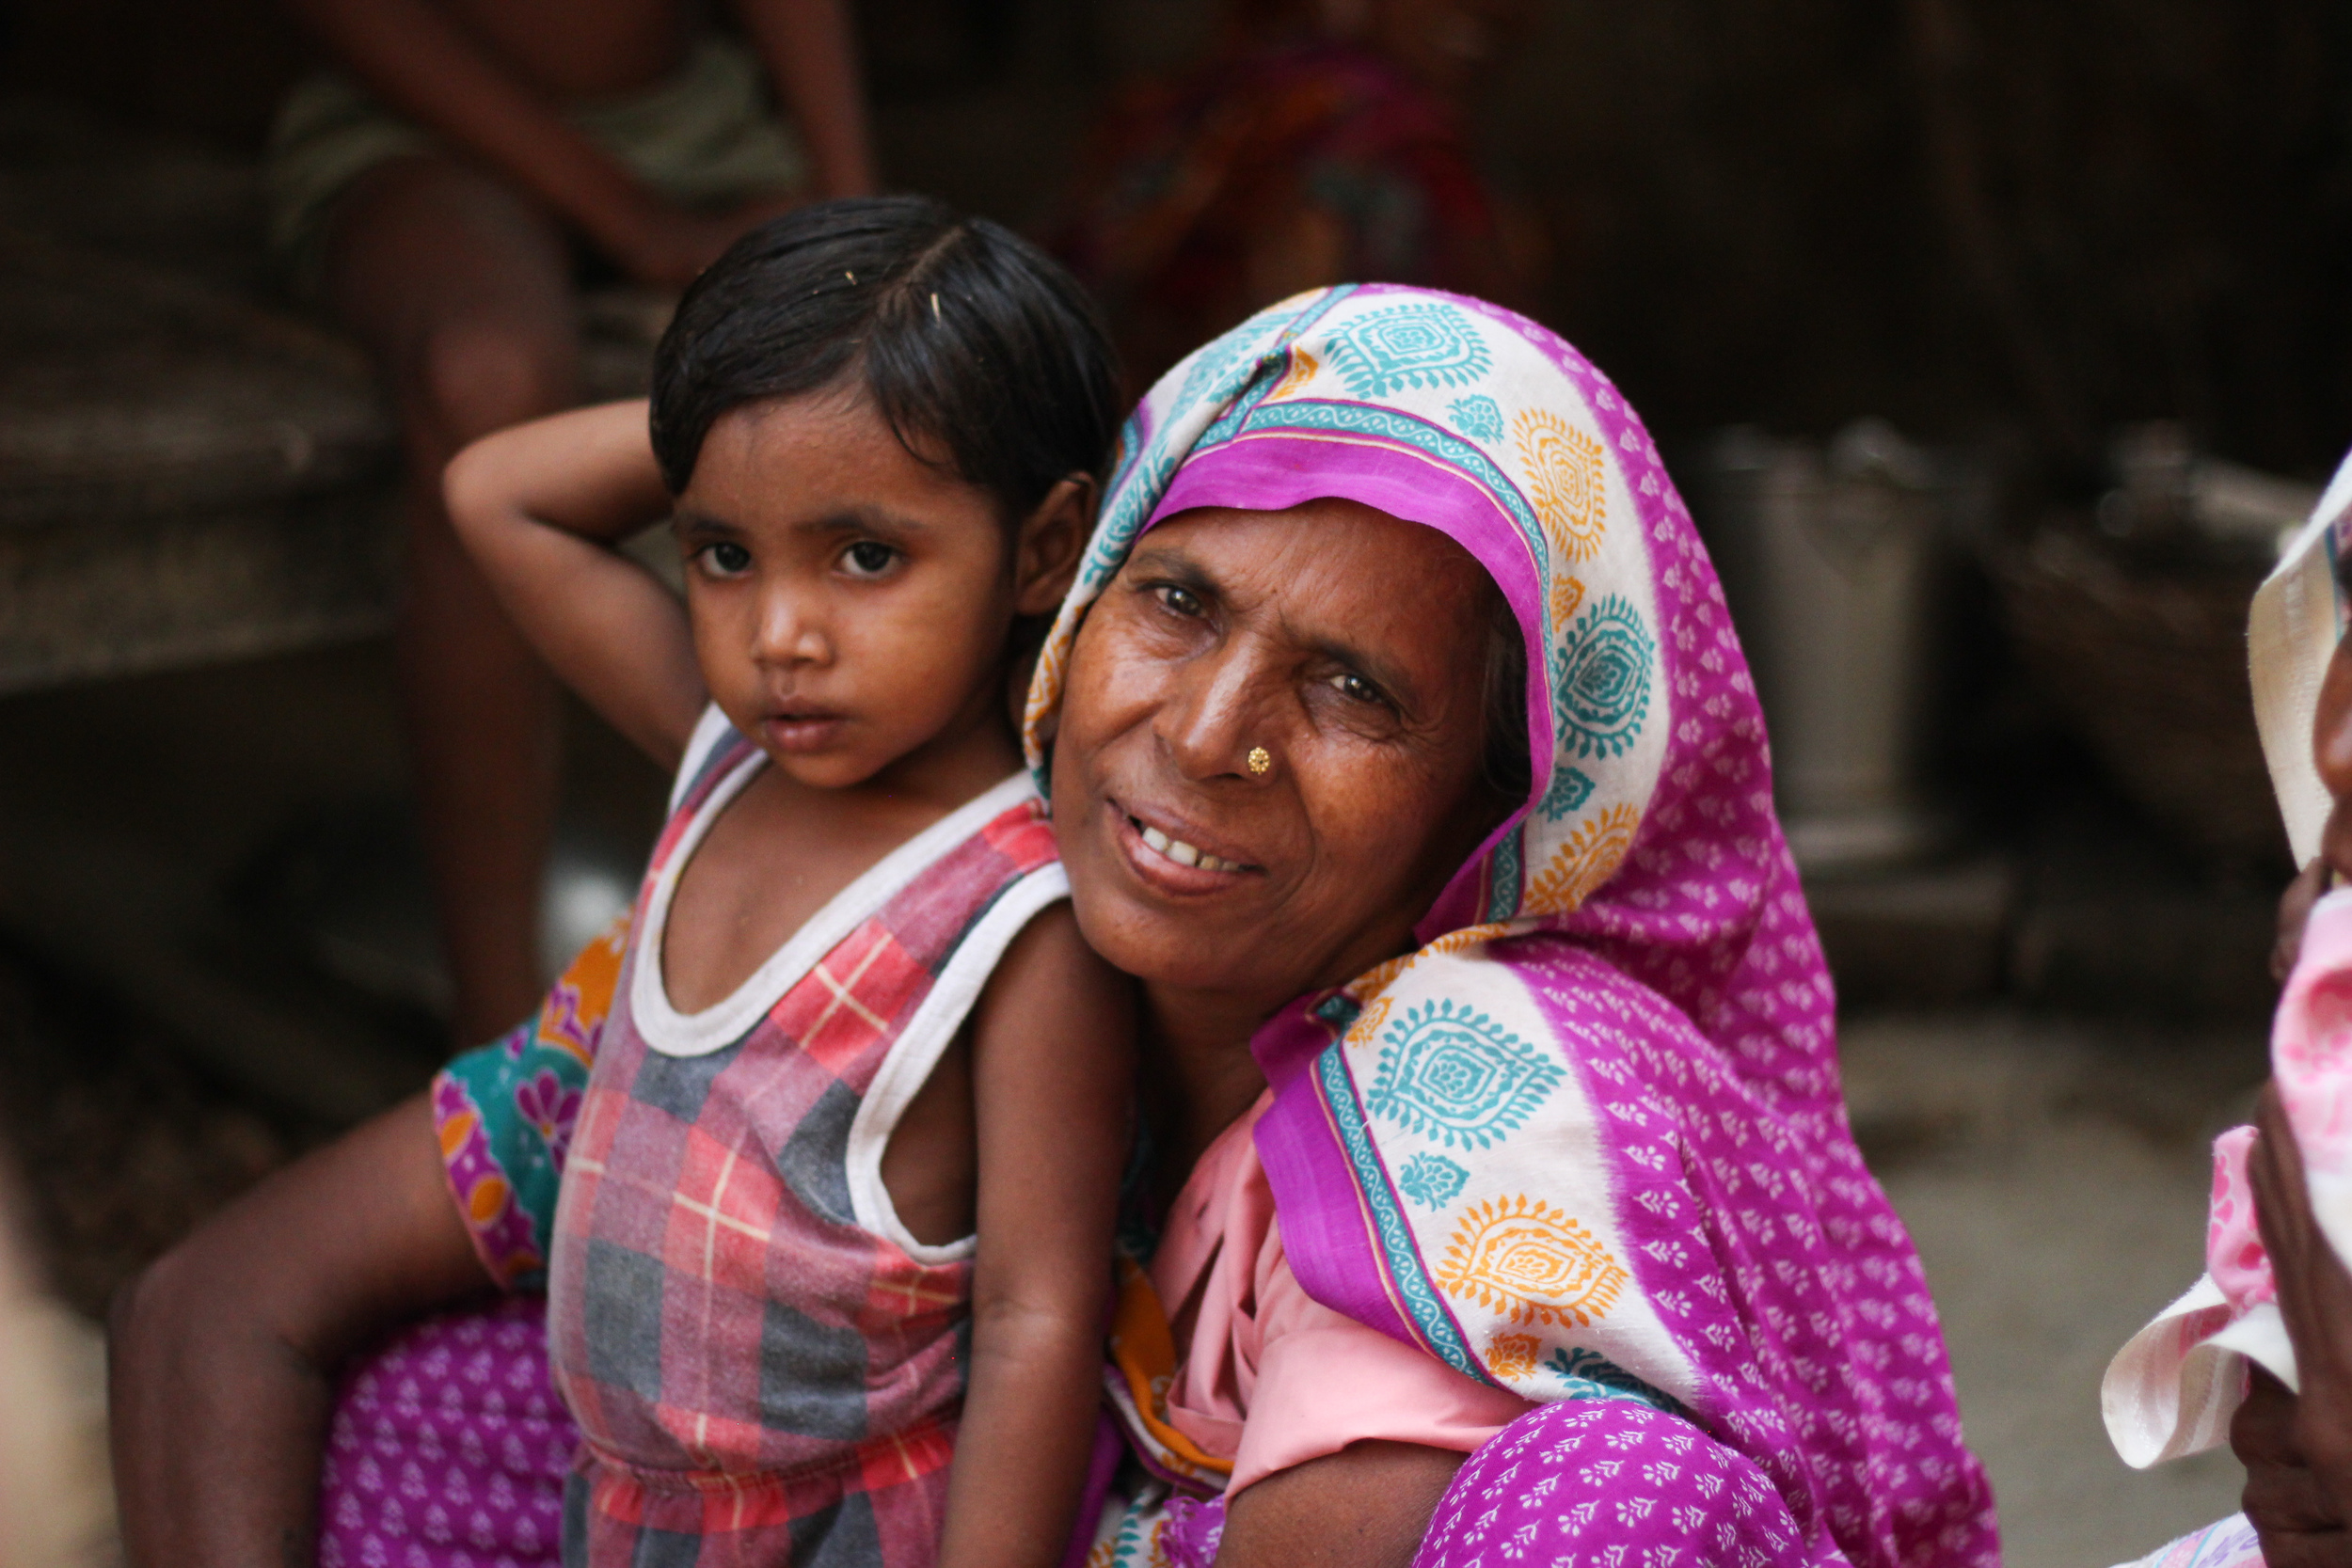 Female children are devalued in rural, Indian culture. While sons are favored and desired, girls receive little to no medical attention, due to the economic burden that comes with trying to marry young women. This woman cradles her granddaughter with pride, despite the stigma associated with being born female.